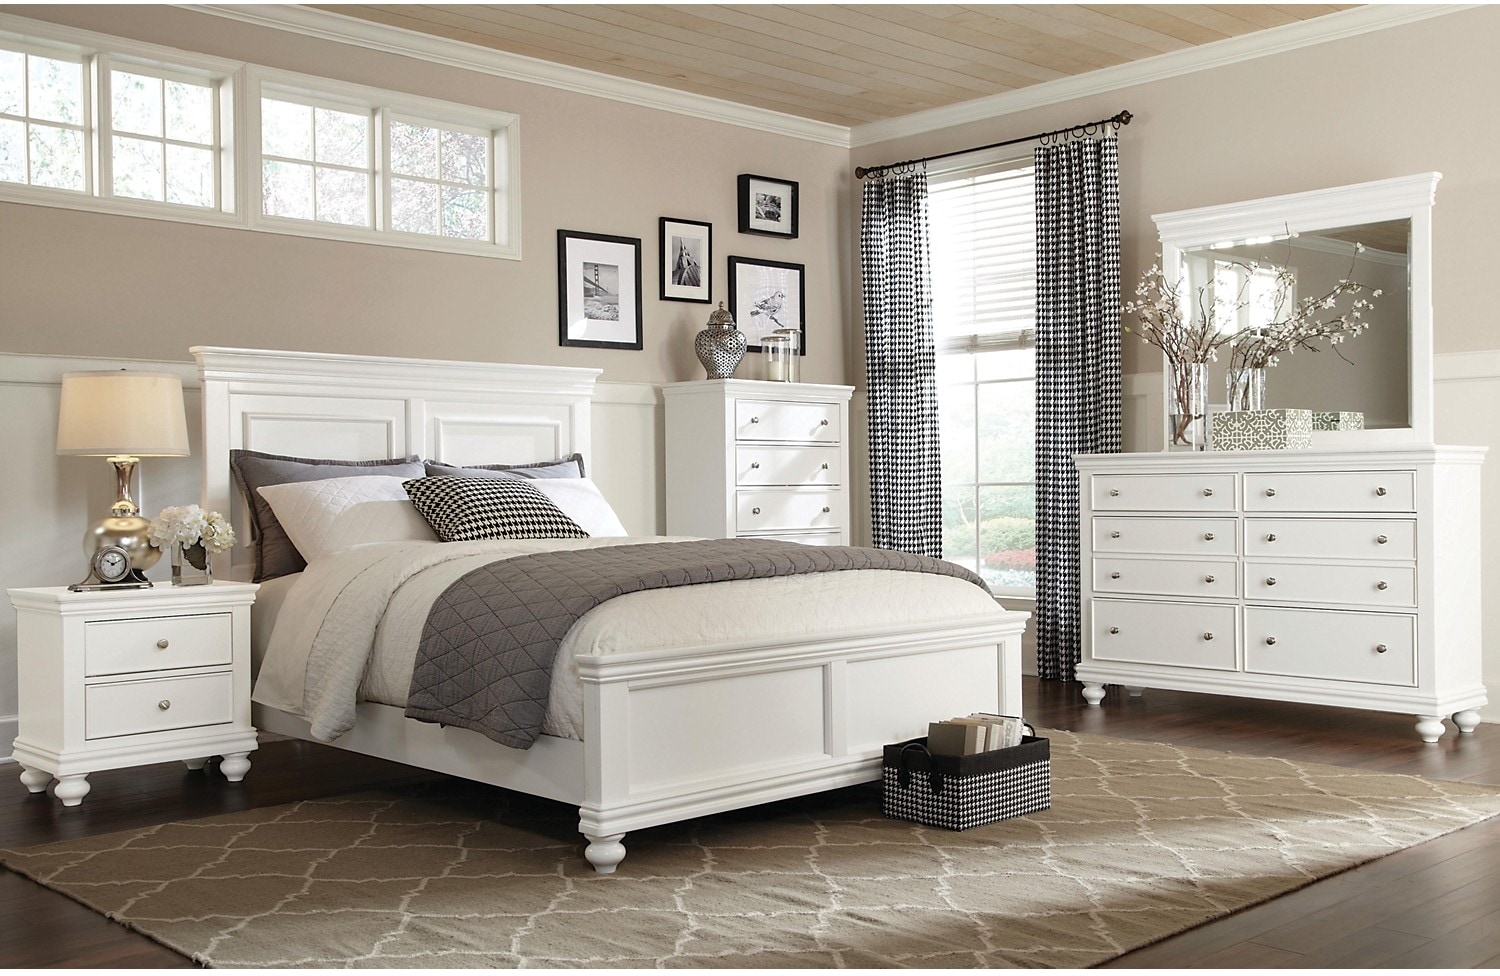 Bedroom Furniture - Bridgeport 5-Piece Queen Bedroom Set – White